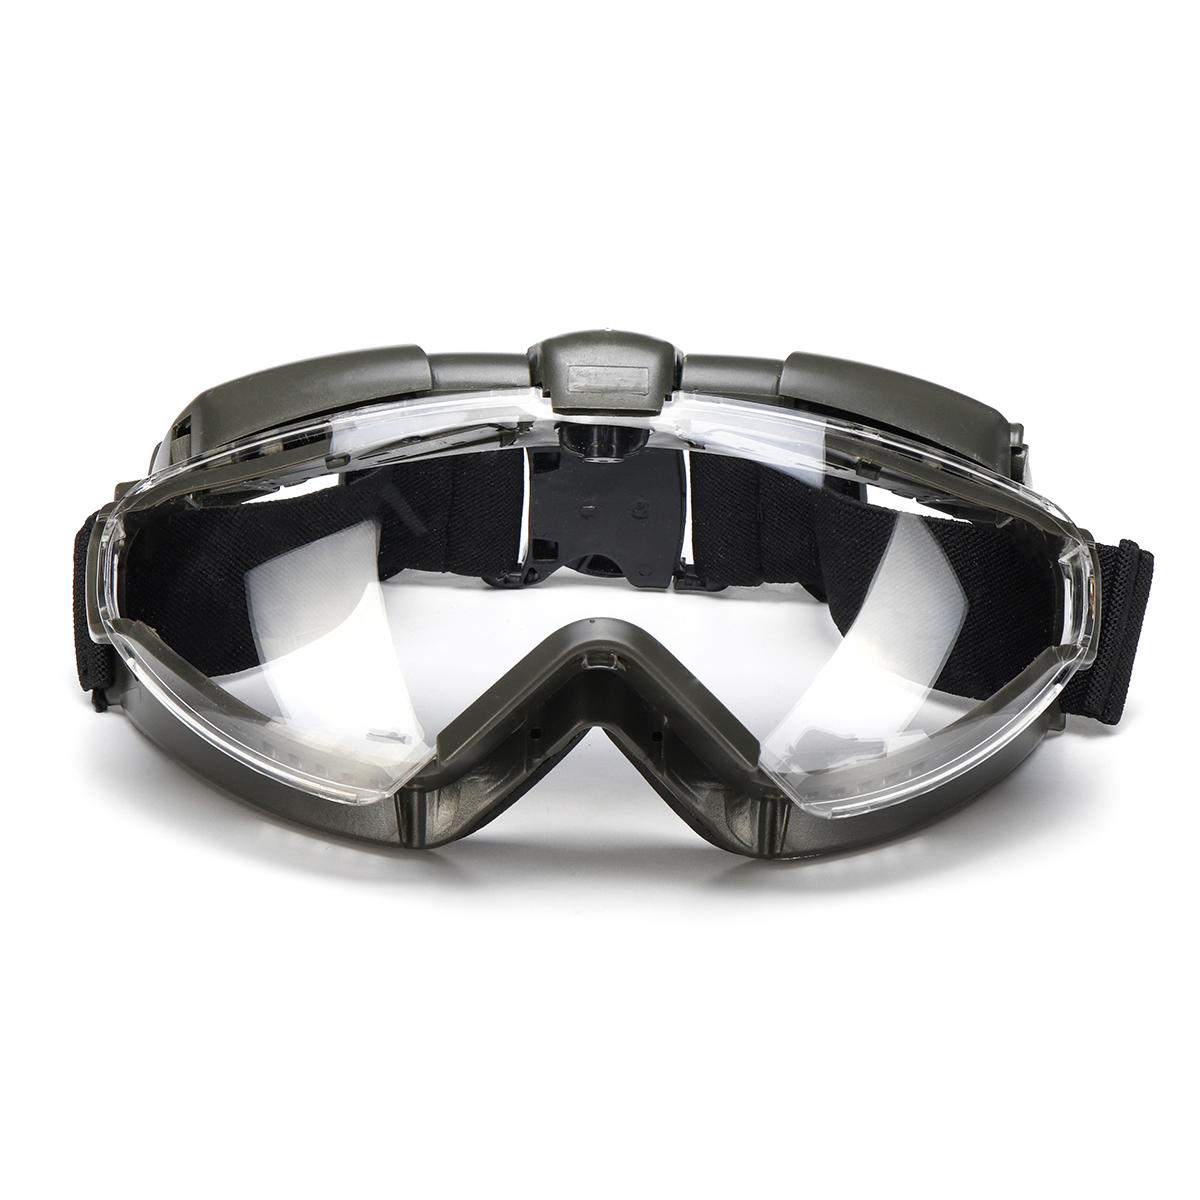 45119fcf2c86 wosport goggles with fan anti-fog dust tactical military airsoft regulator safety  glasses Sale - Banggood.com sold out